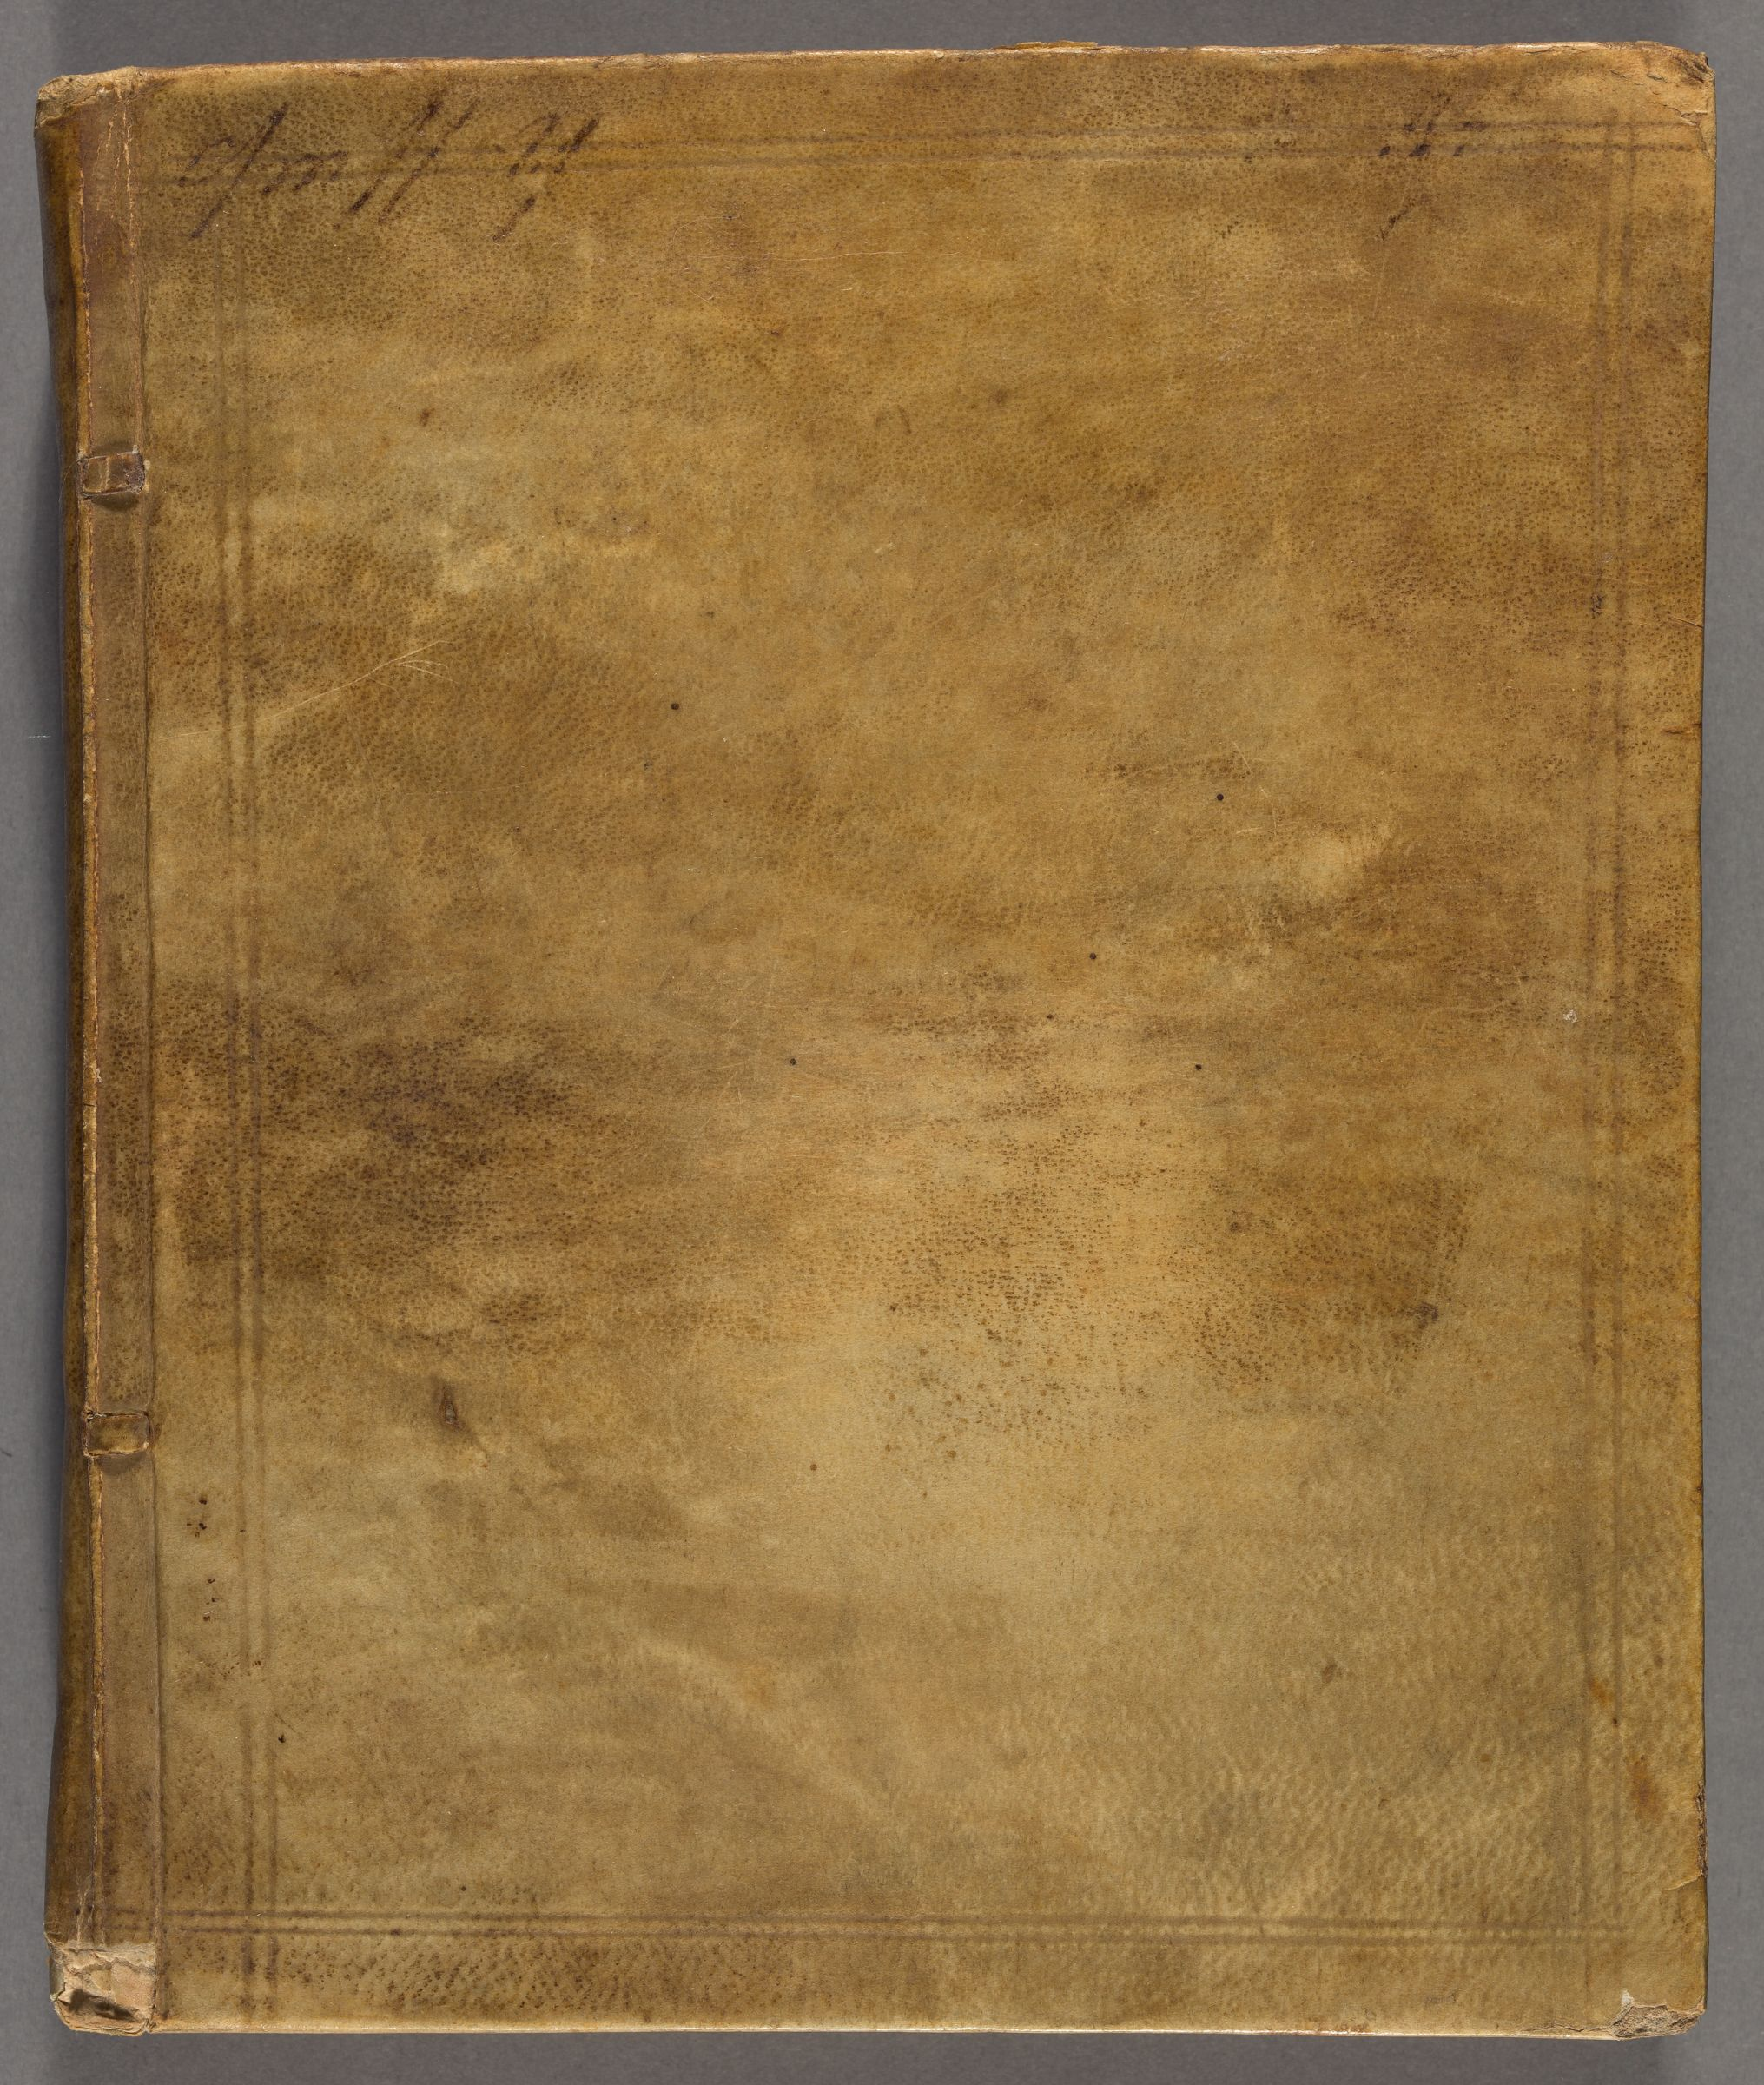 Student mathematical textbook of James Freeman, 1774